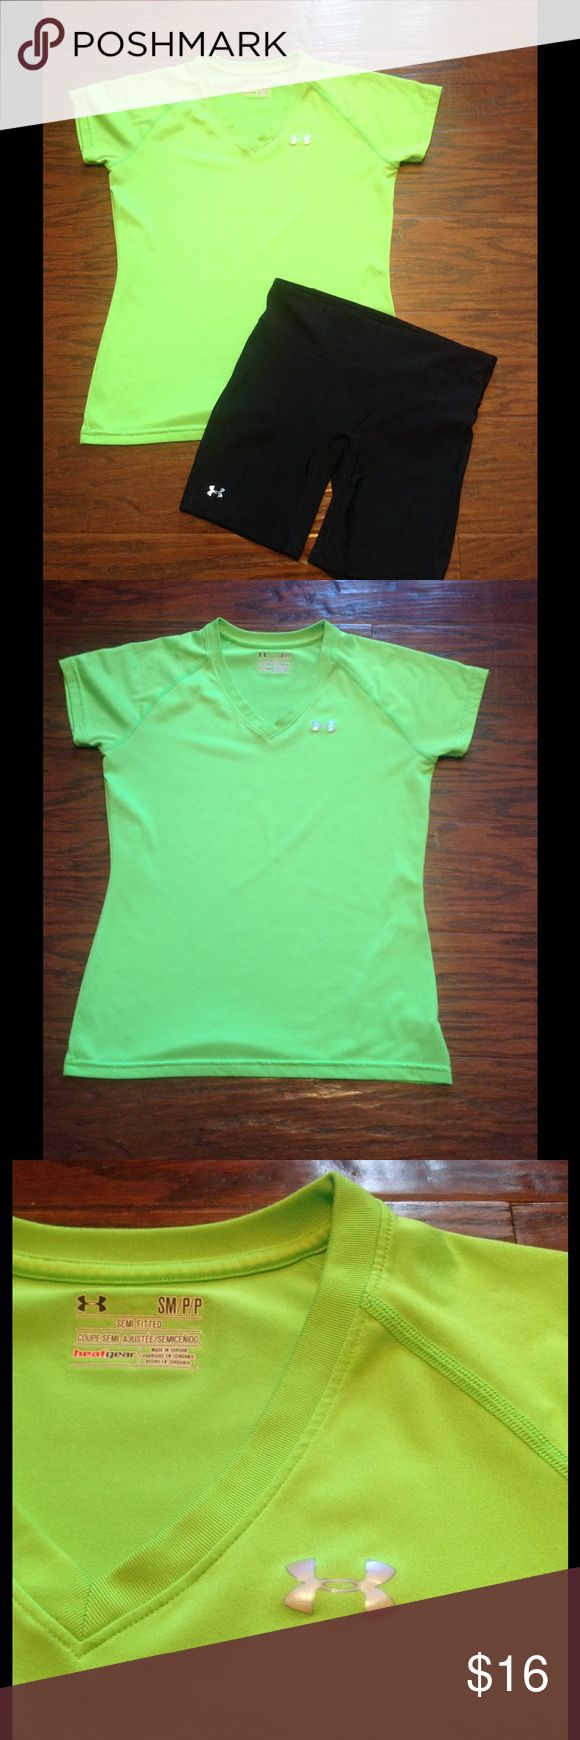 Under Armour Dri-fit lime green shirt. Size S. Under Armour Dri-fit lime green shirt. Size S. Has some fuzzy spots on it which I tried to show in picture 4 but in overall good condition. Under Armour Tops Tees - Short Sleeve